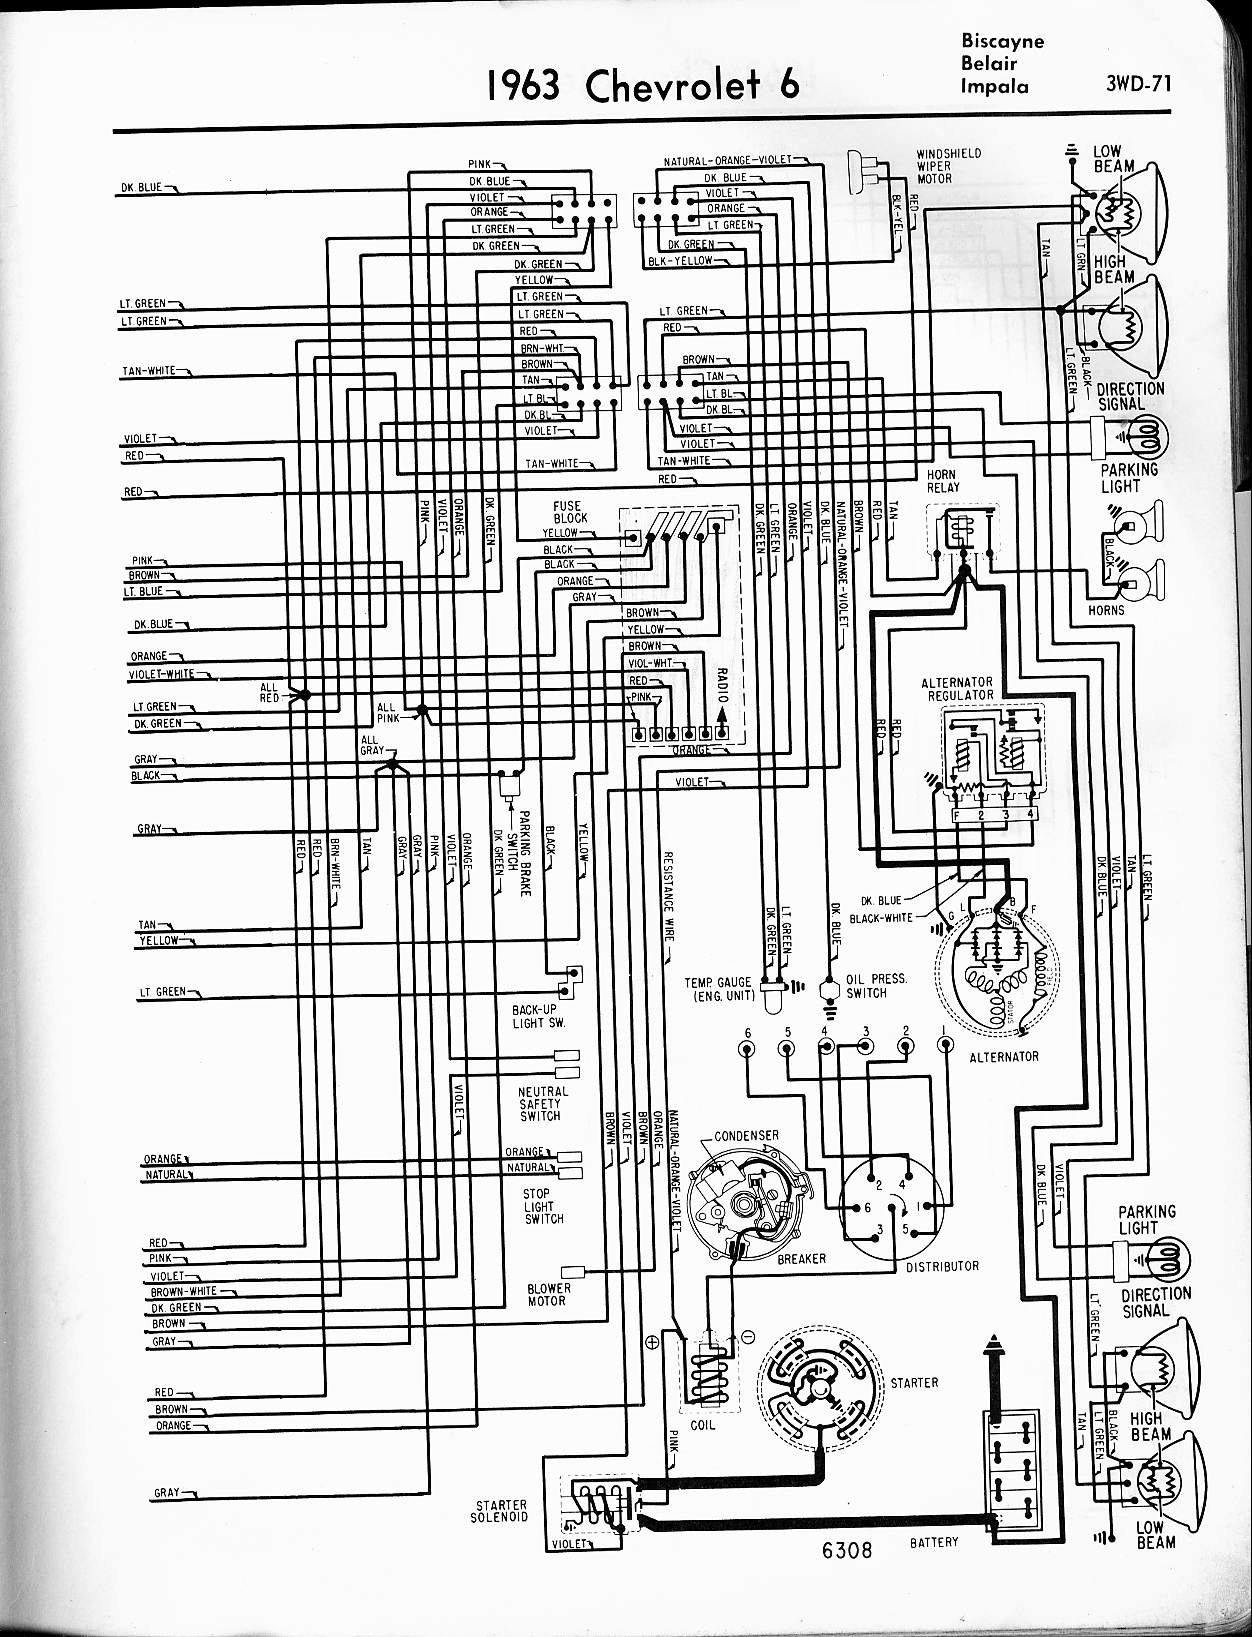 1965 Impala Wiring Diagram : 26 Wiring Diagram Images